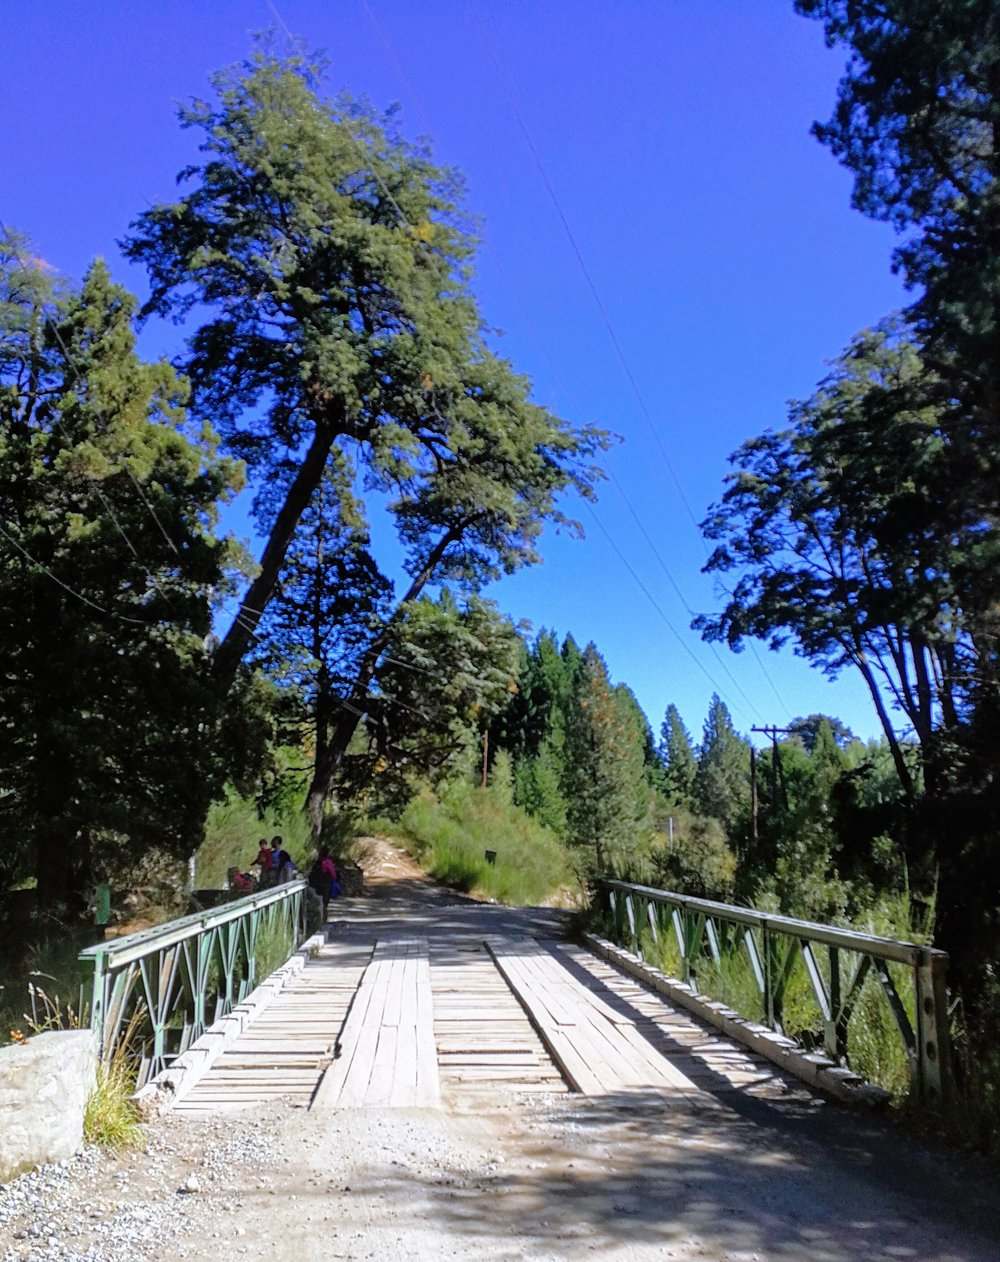 The trailhead to Laguna Negra is 100 meters beyond this bridge crossing Arroyo Goye.